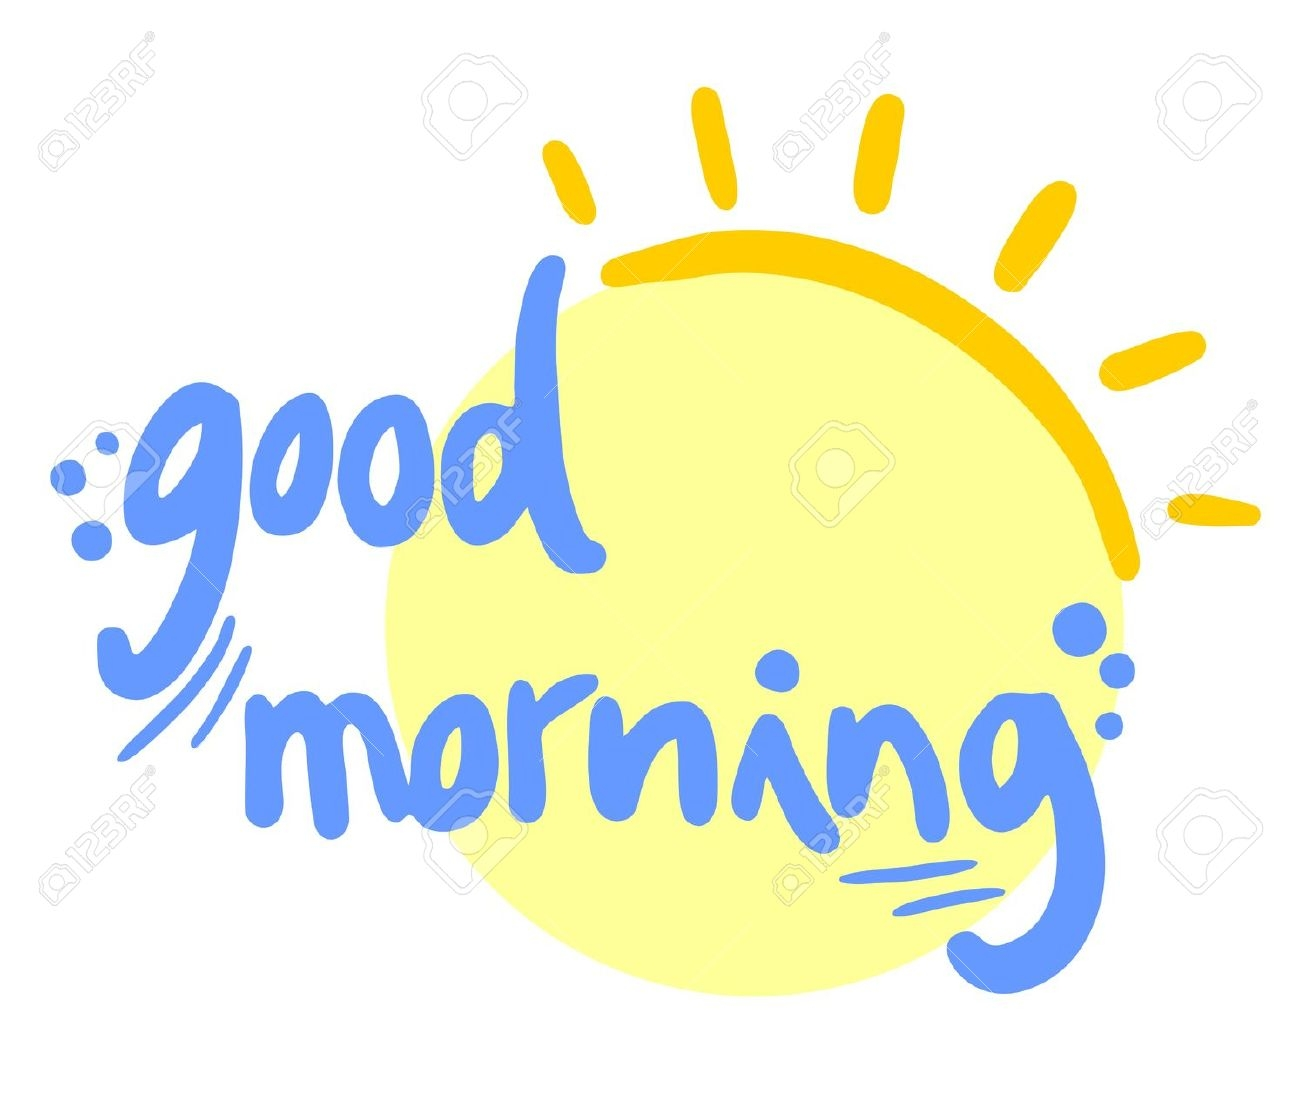 Morning sun clipart - Clipground